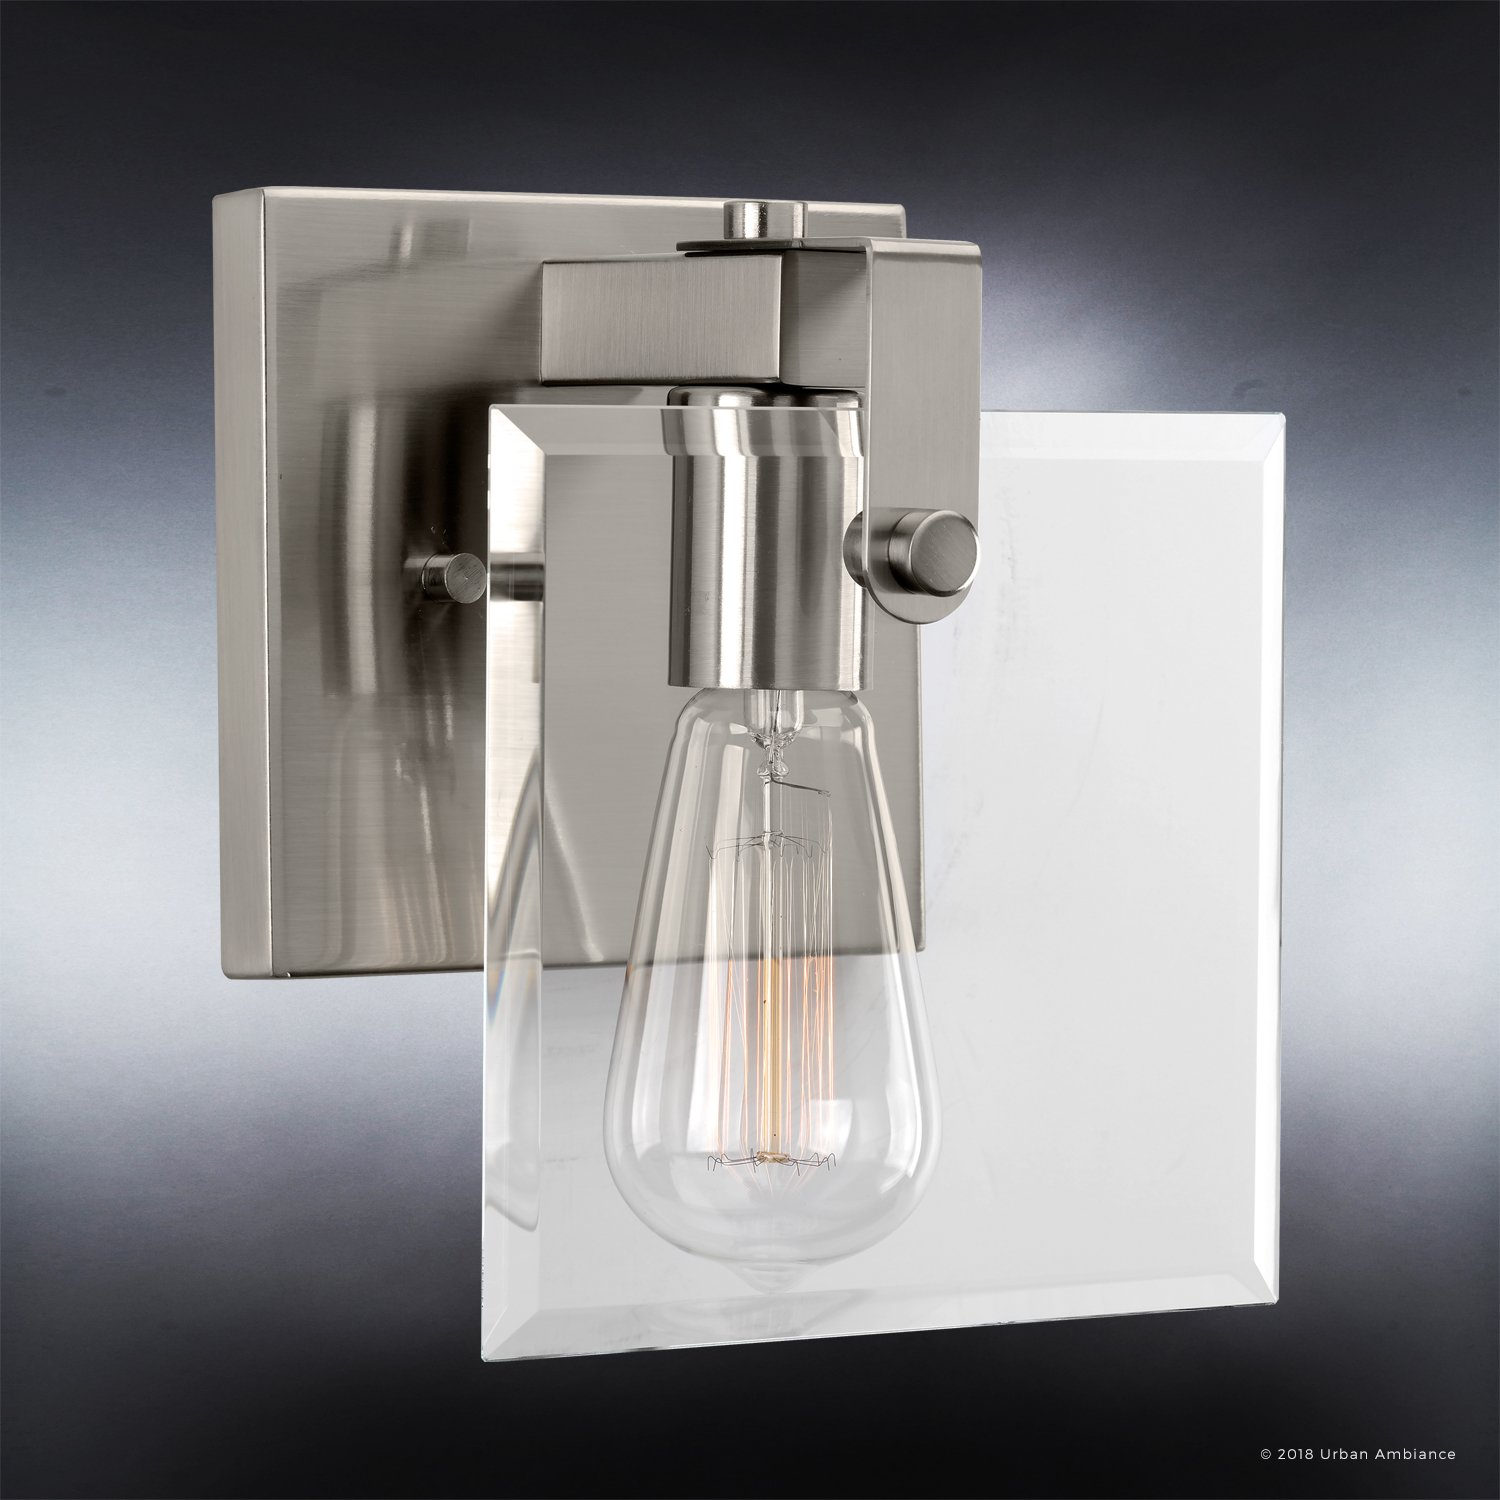 Luxury Modern Farmhouse Bathroom Vanity Light, Small Size 8.38 H x 7 W, with Industrial Chic Style Elements, Brushed Nickel Finish, UHP2455 from The Bristol Collection by Urban Ambiance